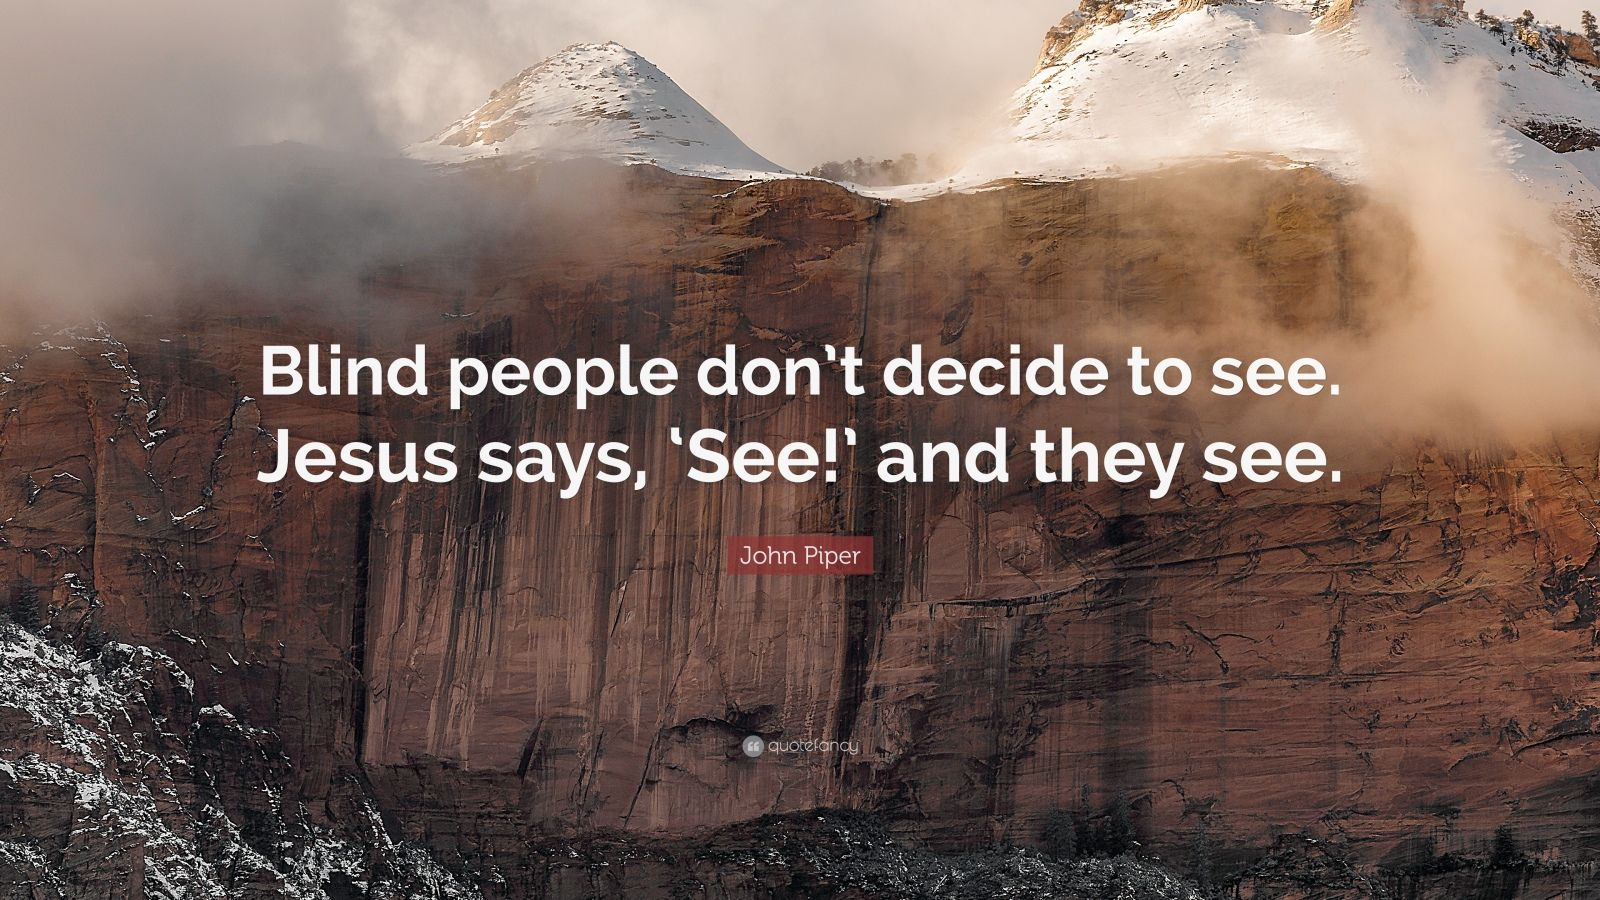 """John Piper Quote: """"Blind people don't decide to see. Jesus says, 'See!' and they see."""""""